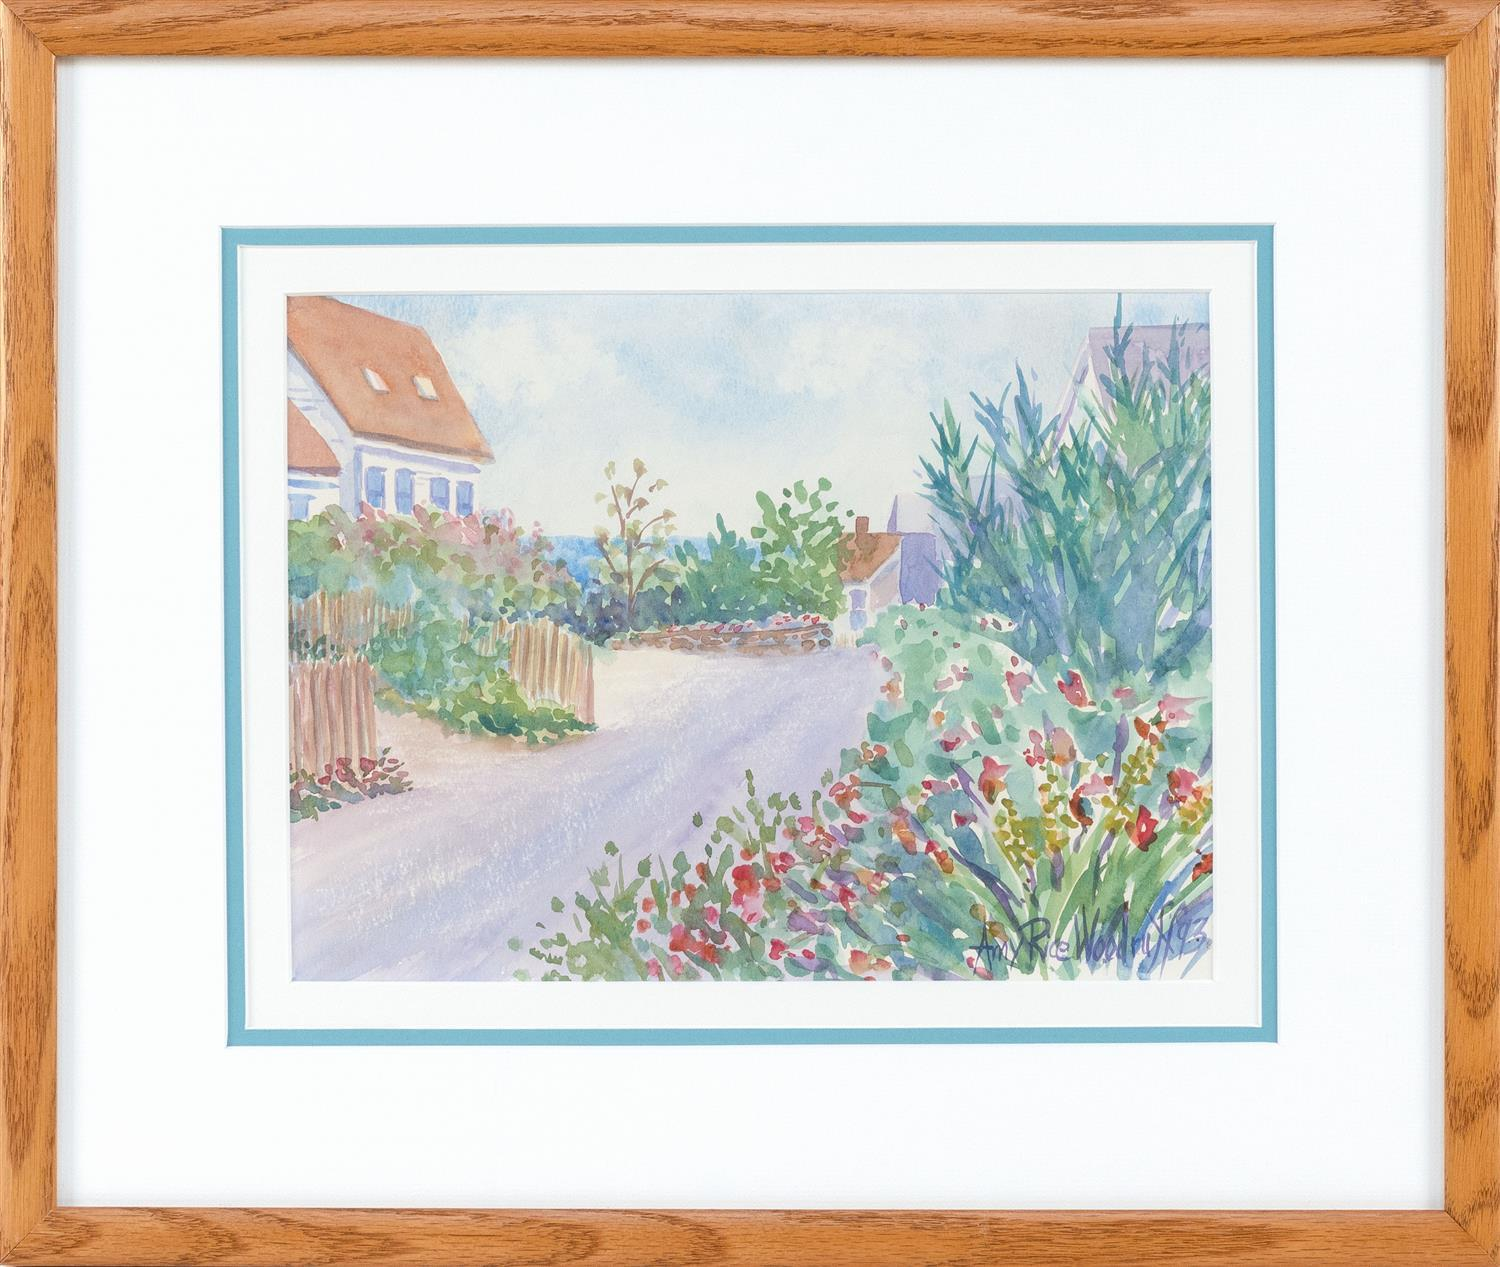 """AMY RICE WOODRUFF, Massachusetts, Contemporary, Seaside cottages., Watercolor on paper, 9"""" x 12"""" sight. Framed 17"""" x 19""""."""